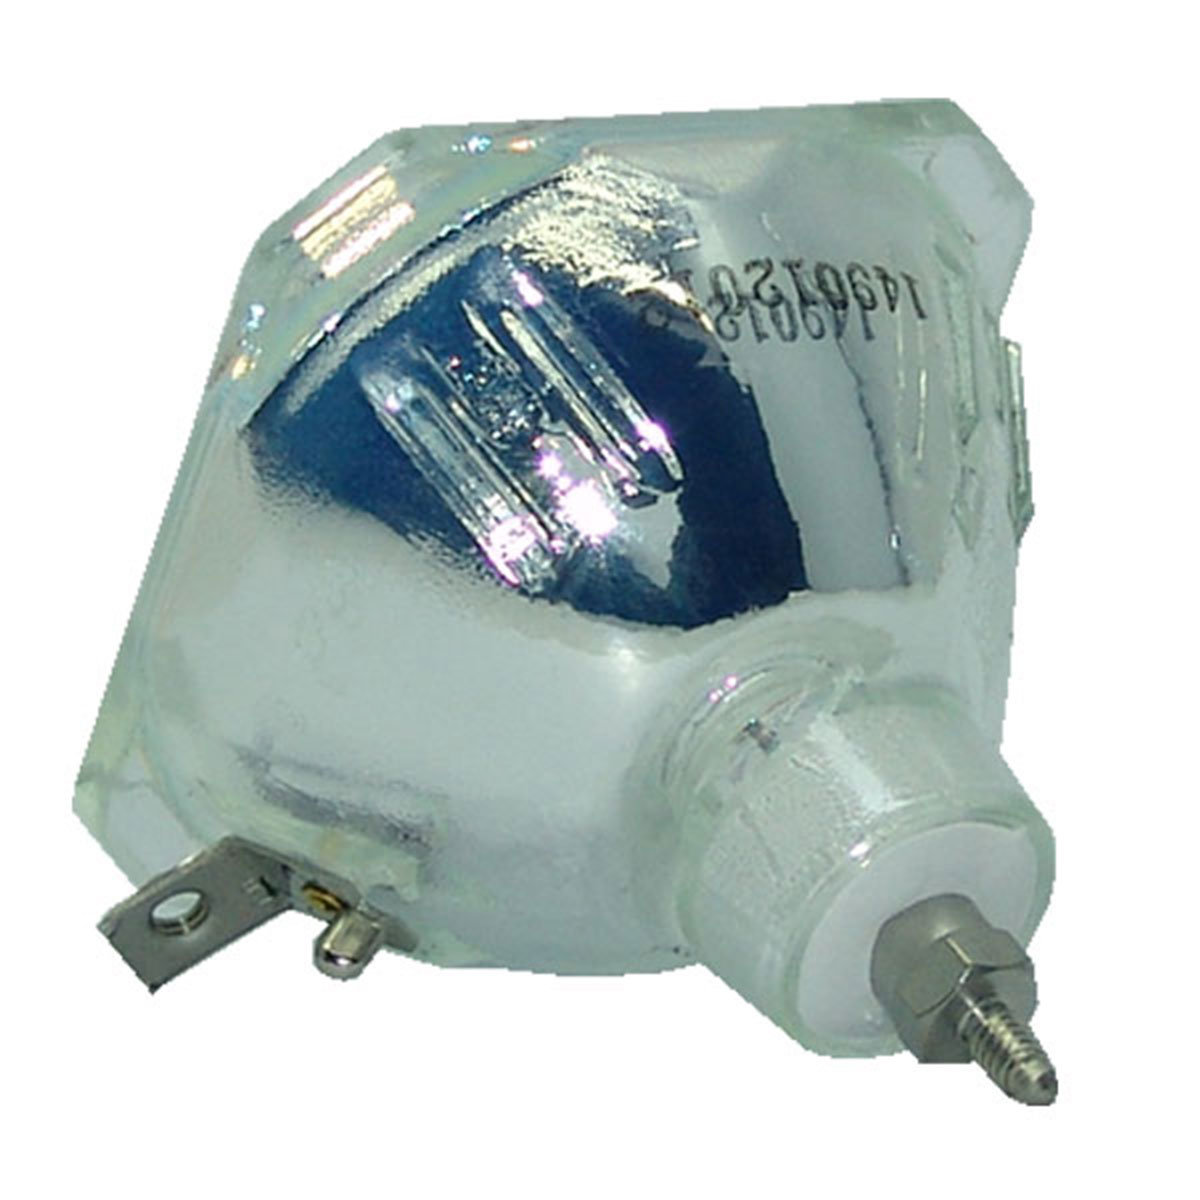 Original Philips TV Lamp Replacement for Sony KDF-50E2010 (Bulb Only) - image 3 of 5